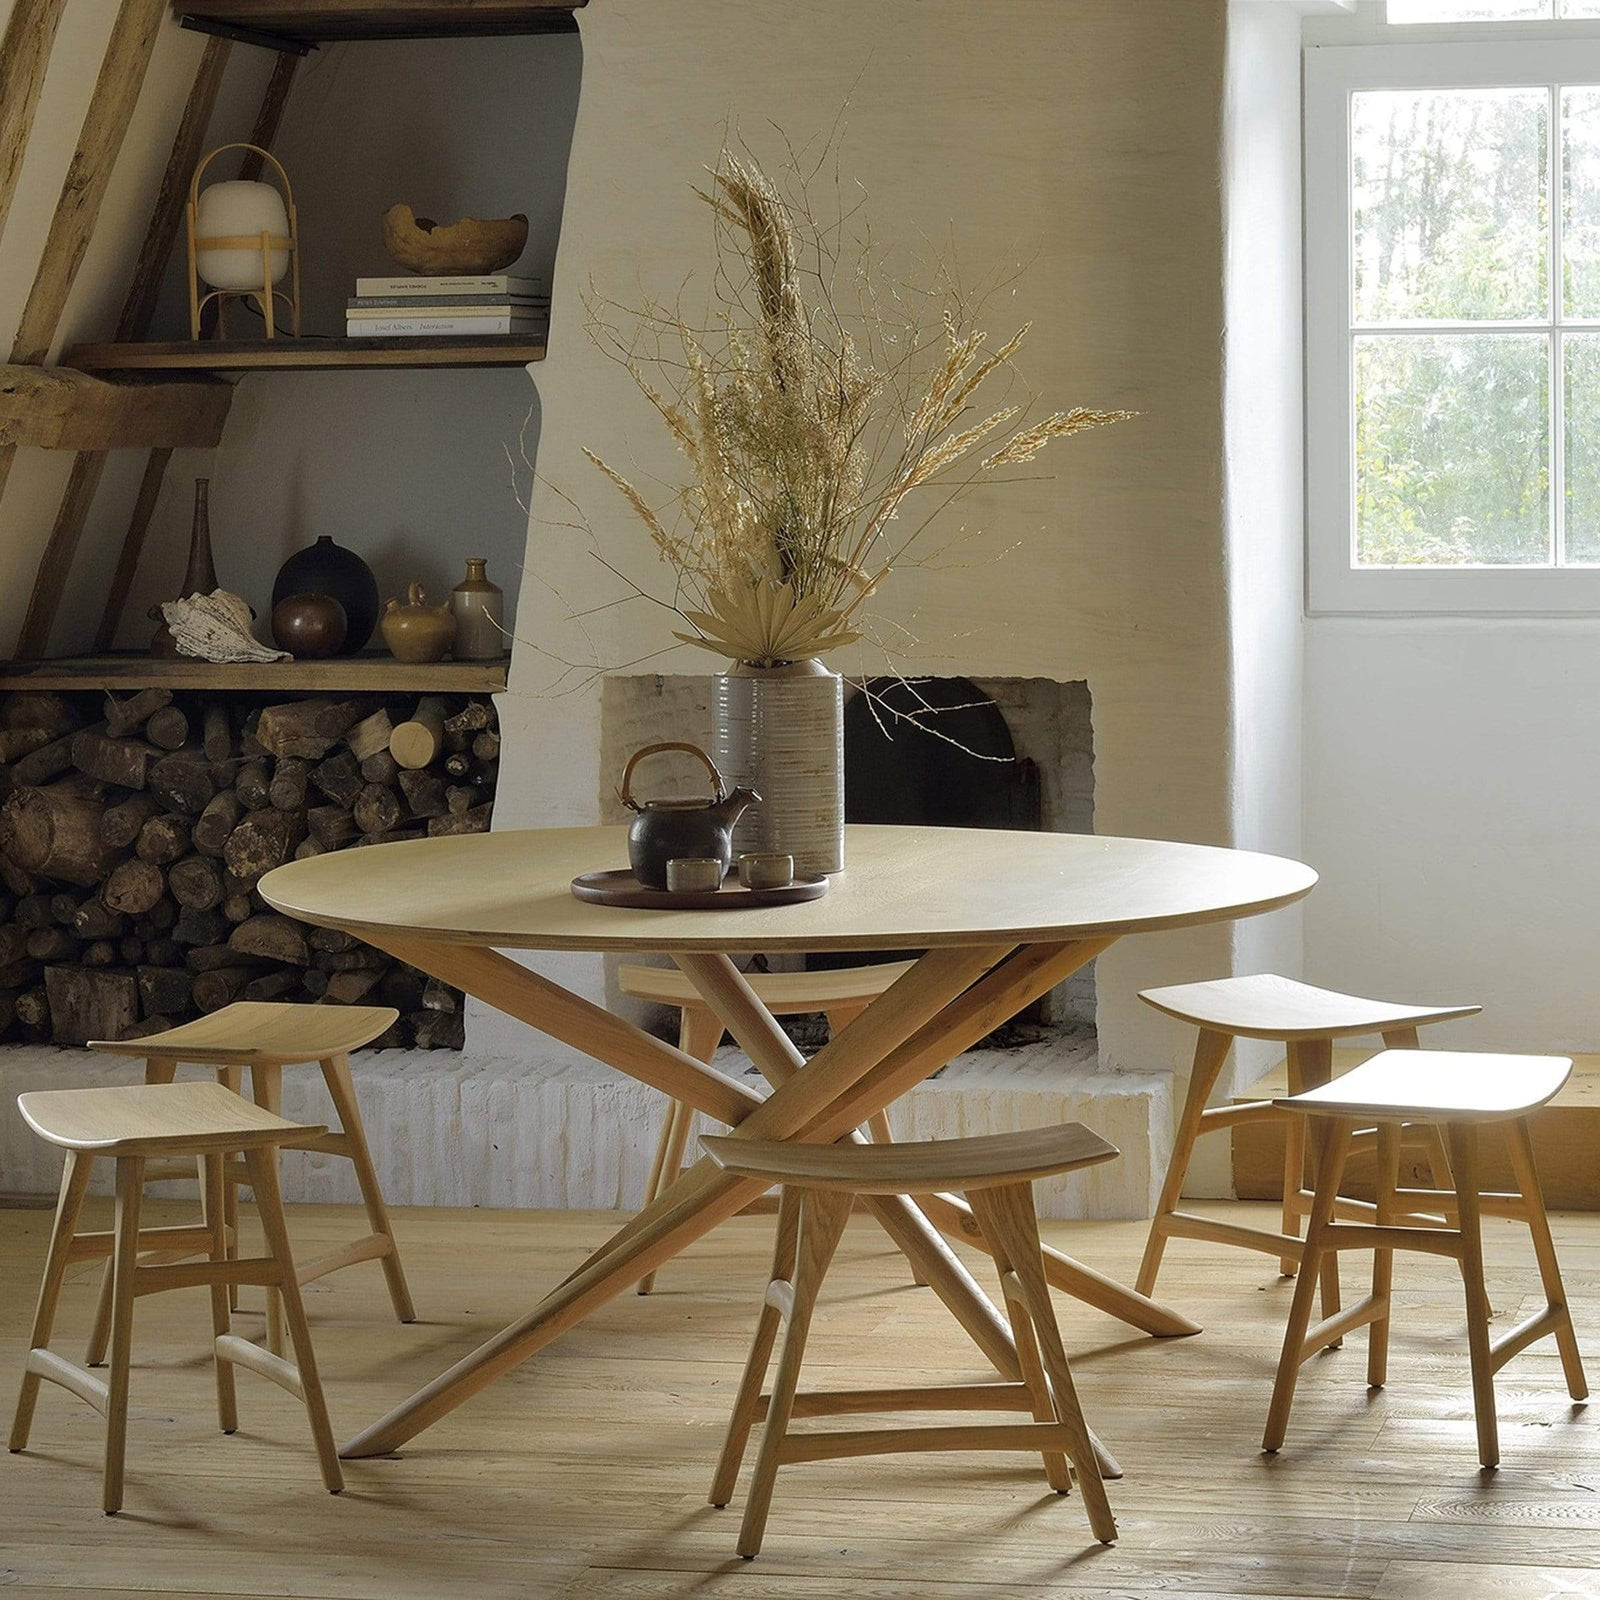 Ethnicraft Furniture Oak Mikado Round Dining Table